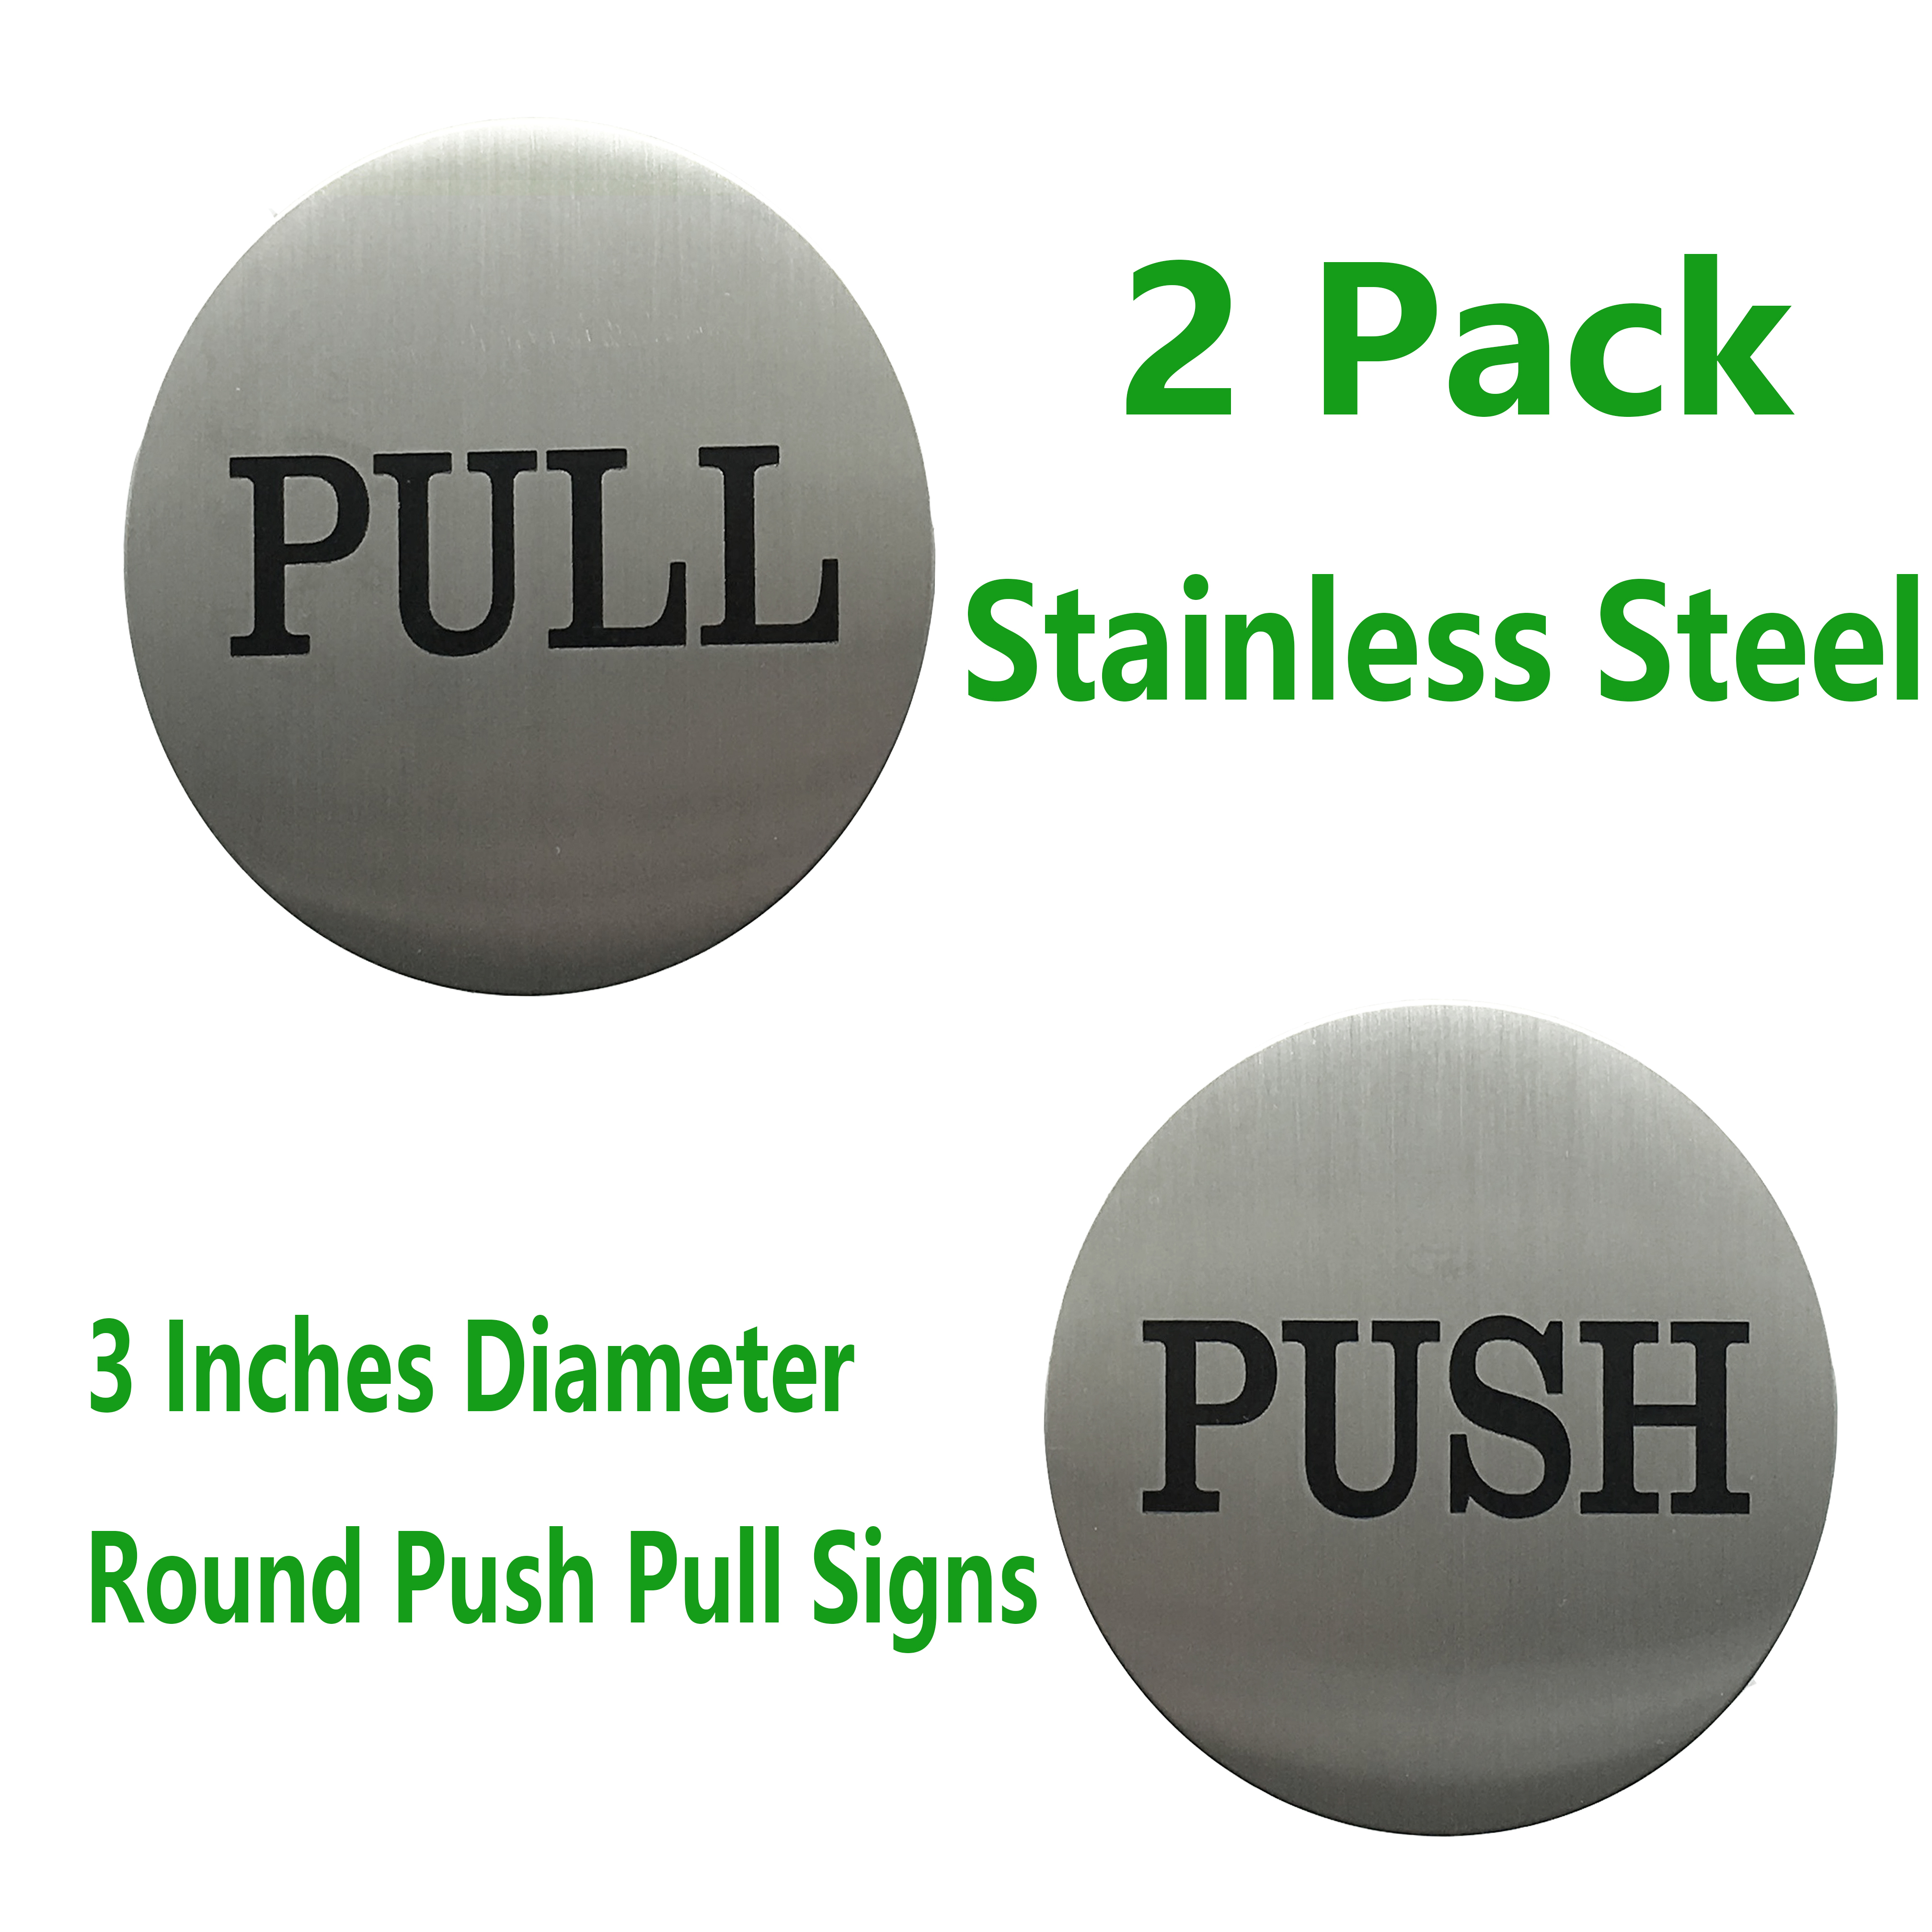 2 Pair 3 Round Engraved Push Pull Door Signs Set Premium Stainless Steel Self Adhesive Vinyl Stickers For Indoor Outdoor Use Brushed Silver Item No